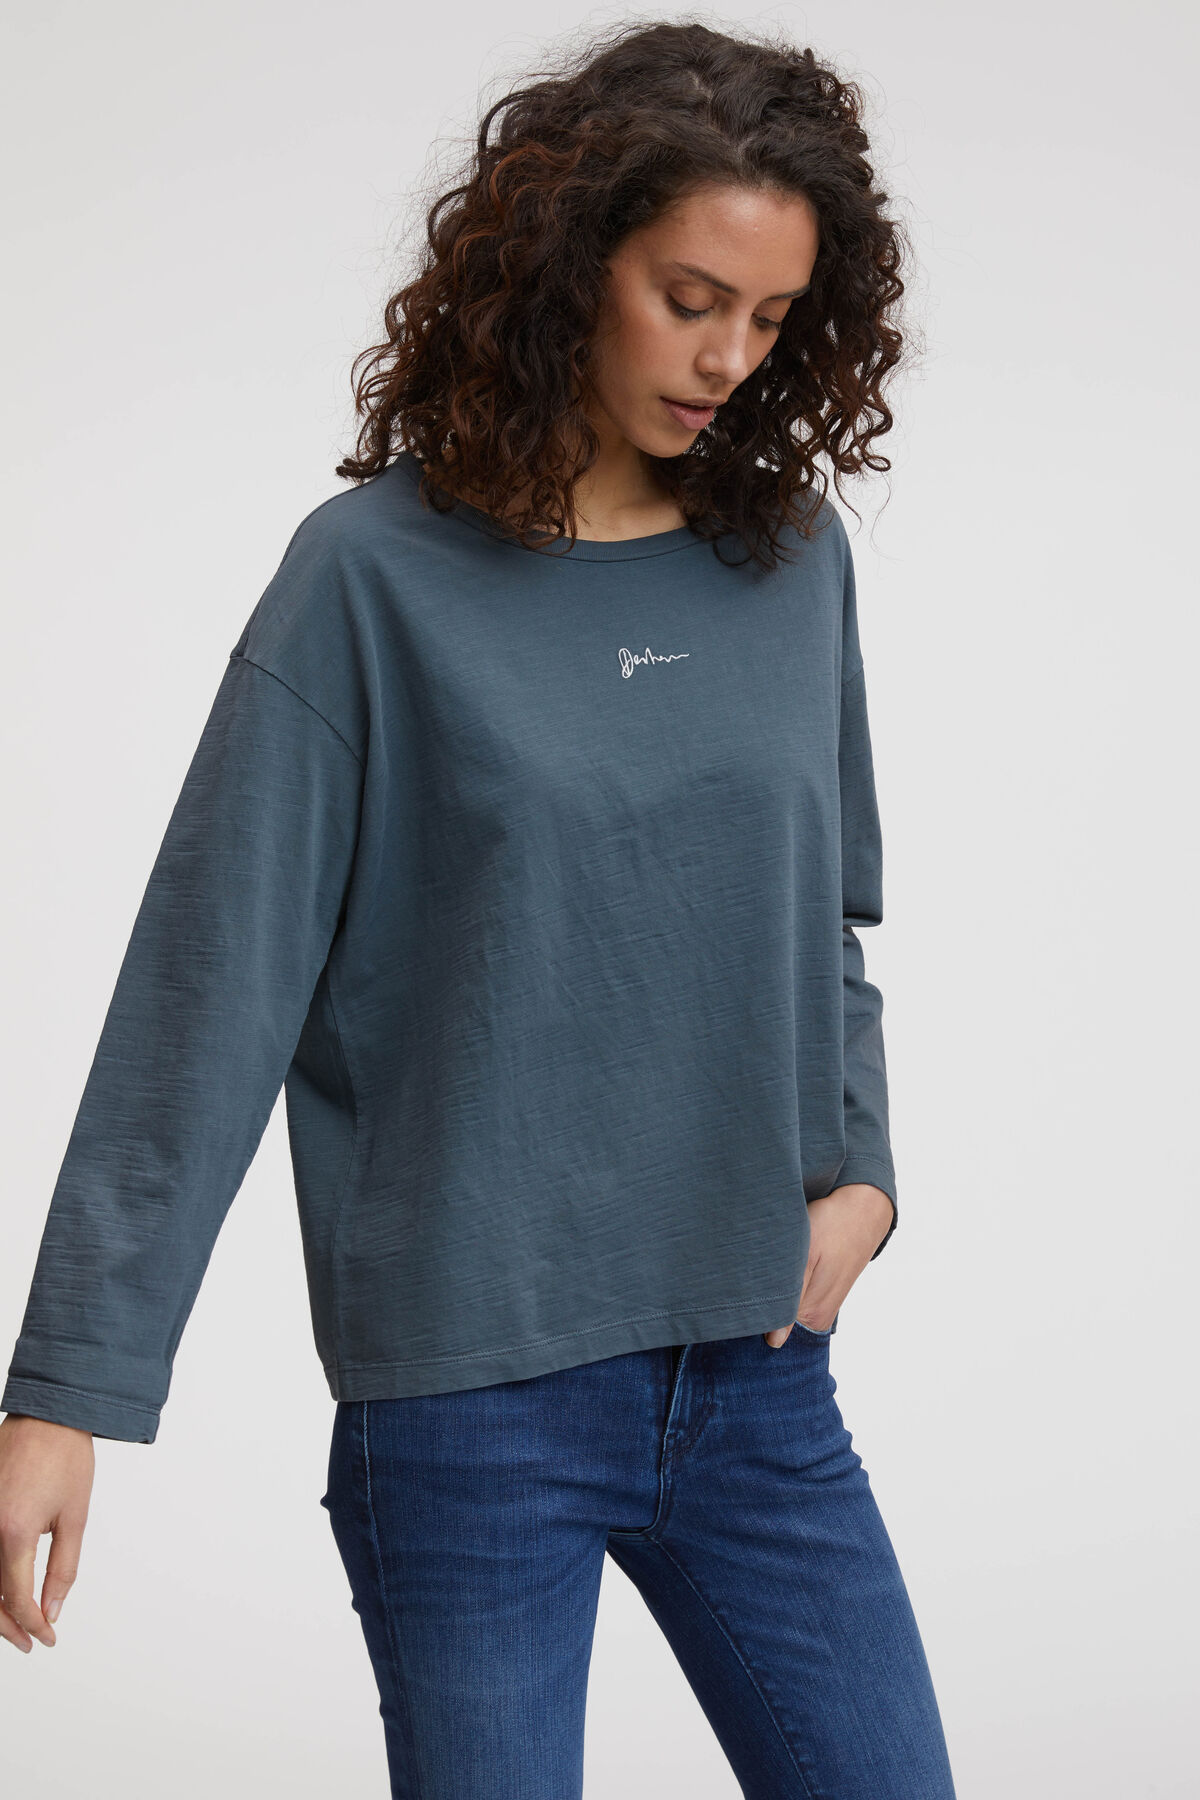 JANE LS GRAPHIC TEE HEAVY COTTON JERSEY - Boxy Fit